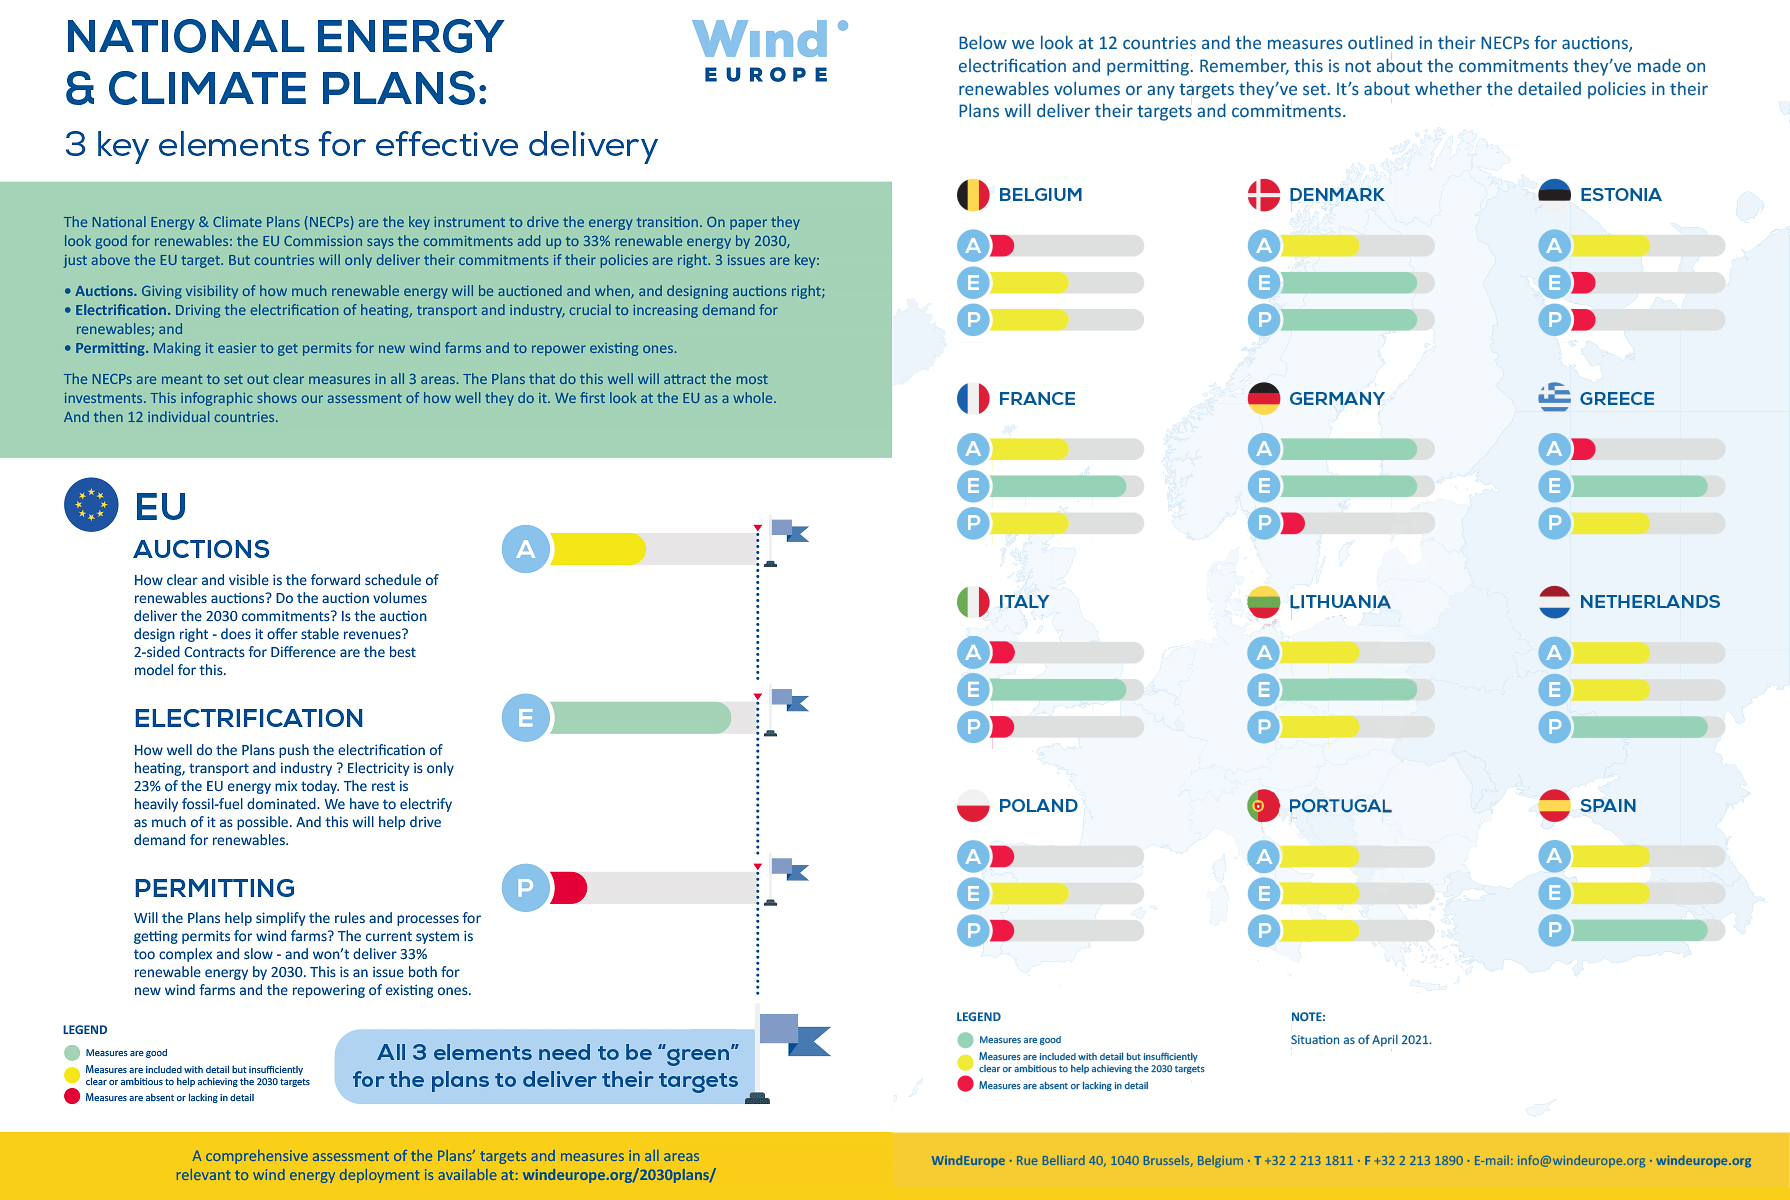 https://windeurope.org/wp-content/uploads/images/about-wind/infographics/WindEurope-National-Plans-Infographic.png